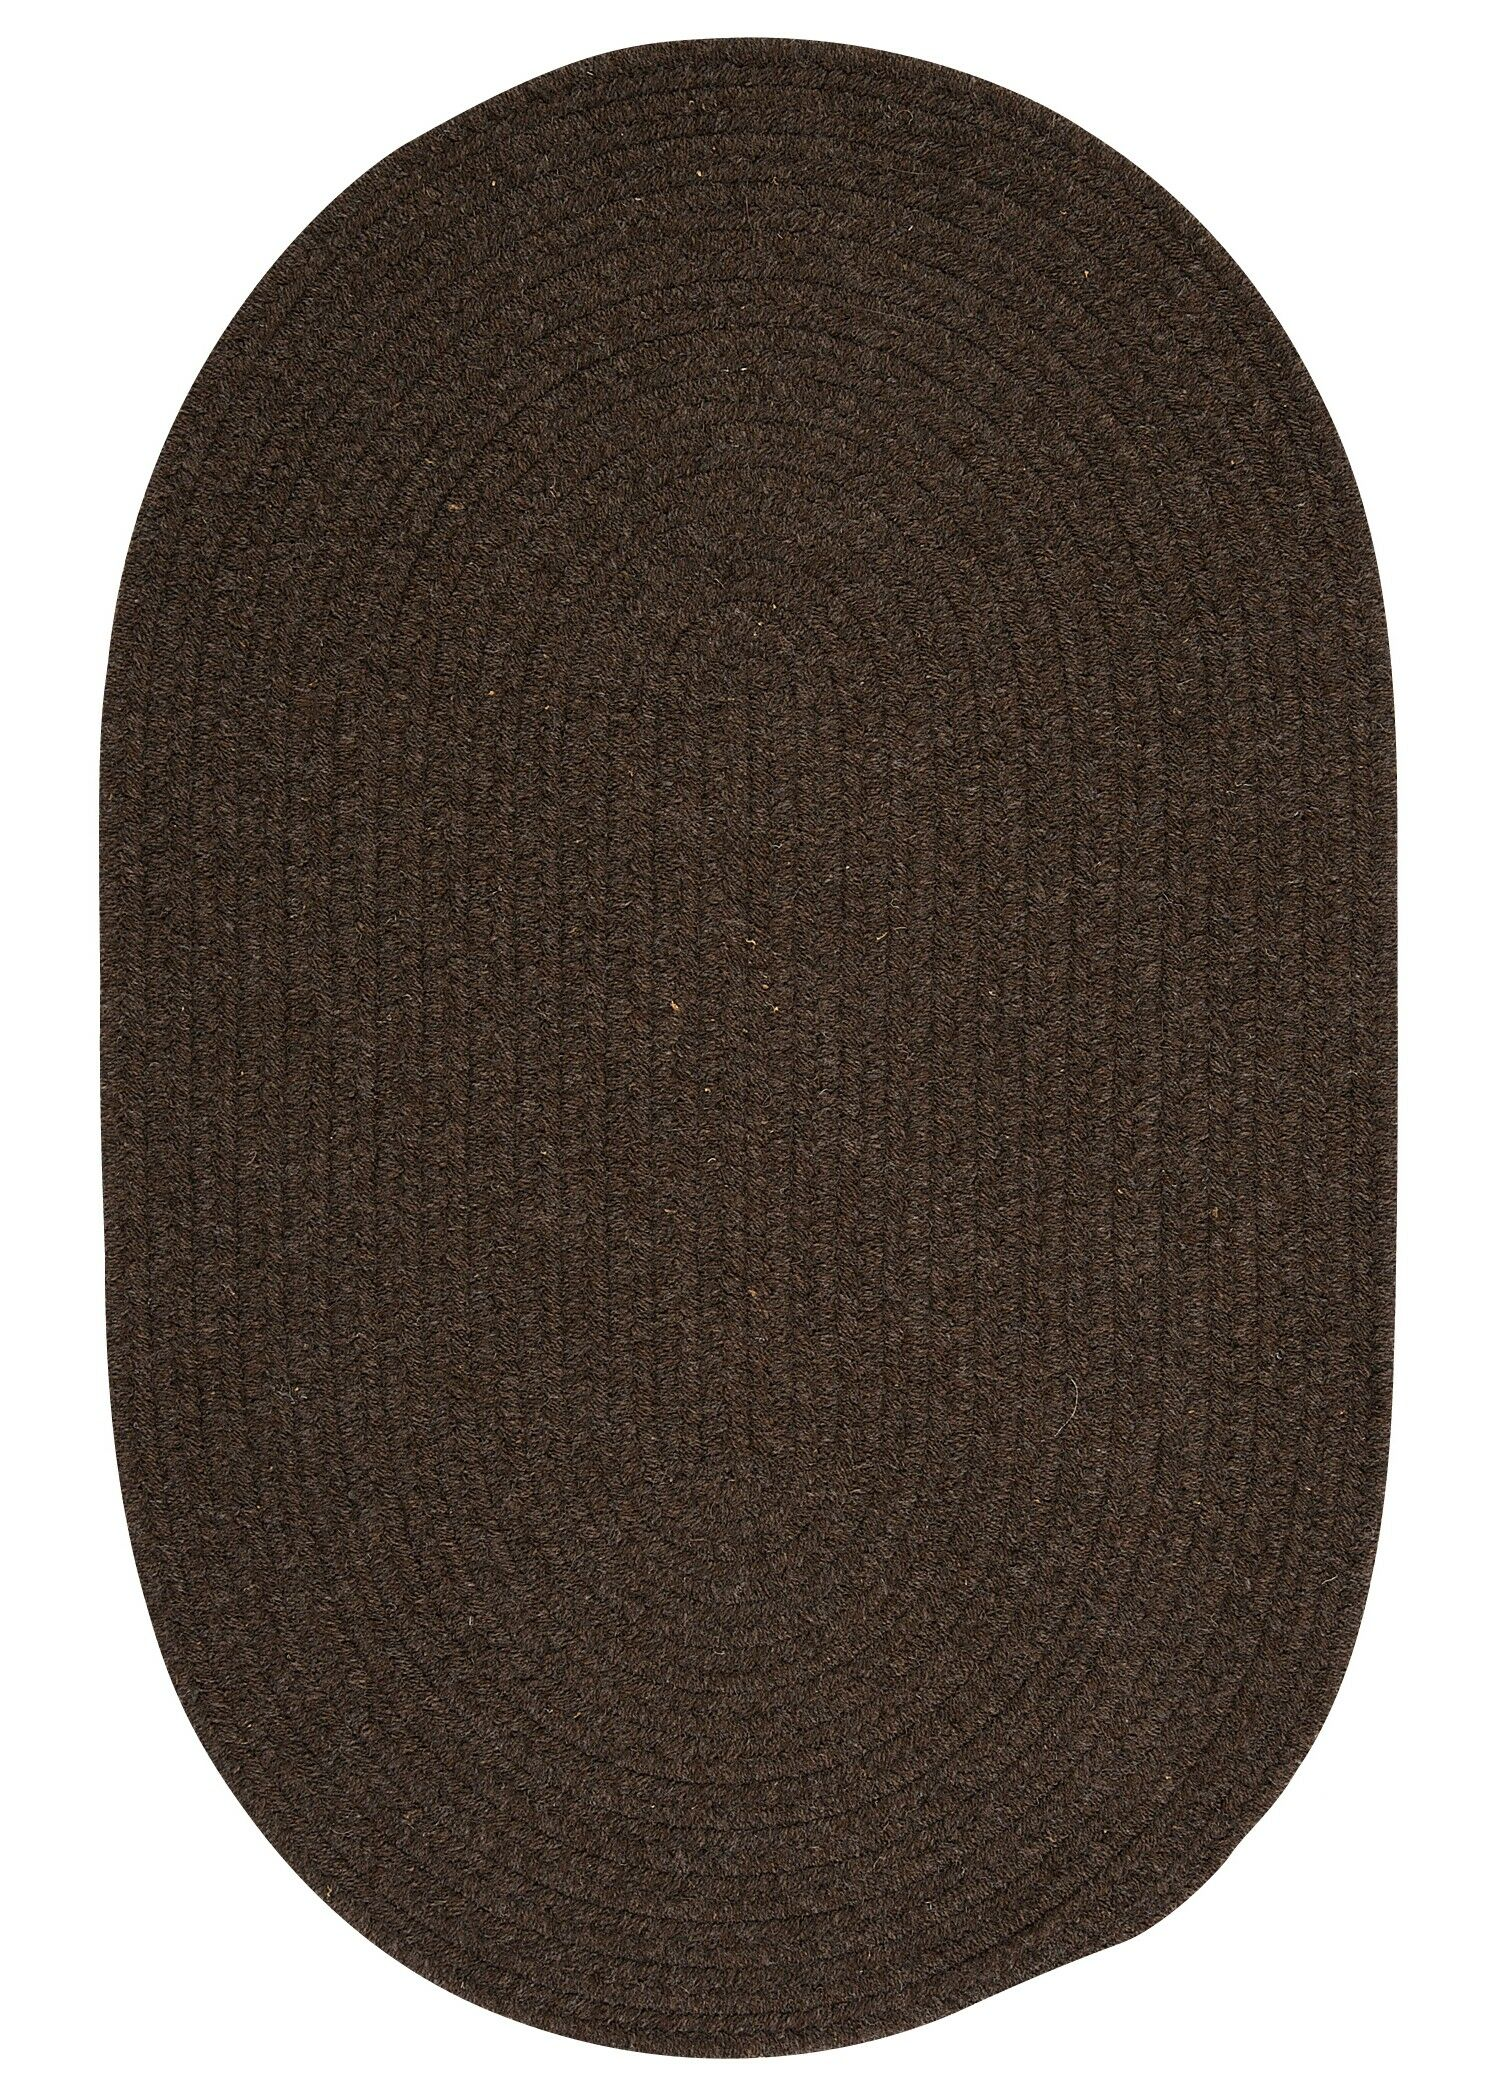 Navarrette Brown Area Rug Rug Size: Oval 3' x 5'